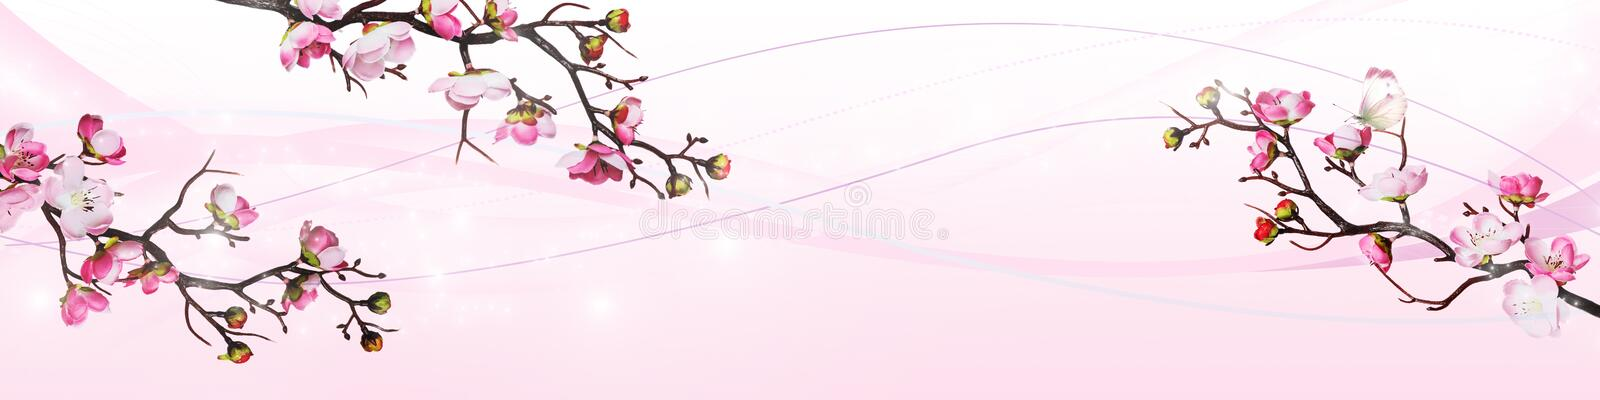 Pink cherry flowers isolated on white background stock illustration